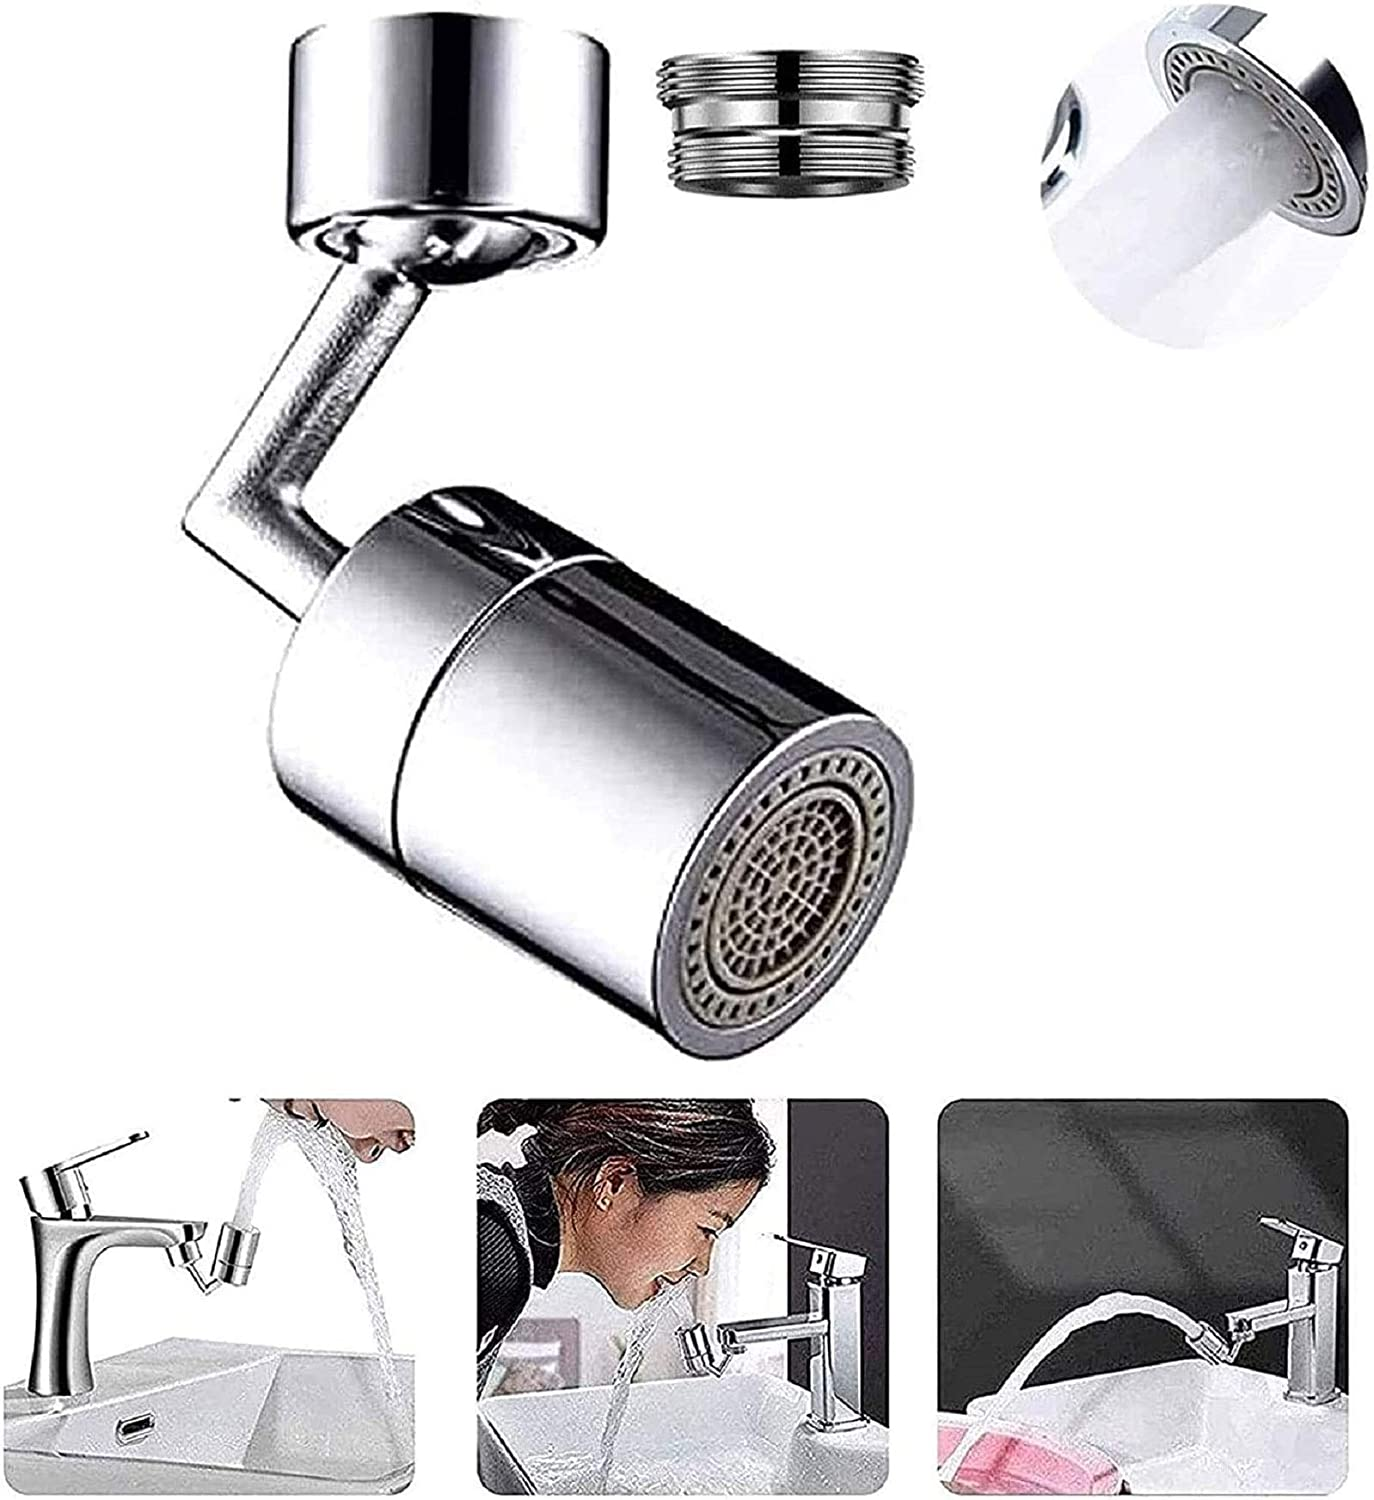 22-24mm Tap Interface 1 Psc Universal Splash Filter Faucet 720 Degree Rotatable Faucet Sprayer Head 4-Layer Filter Oxygen-Enriched Foam Leakproof Faucet for Kitchen Bathroom Toilet